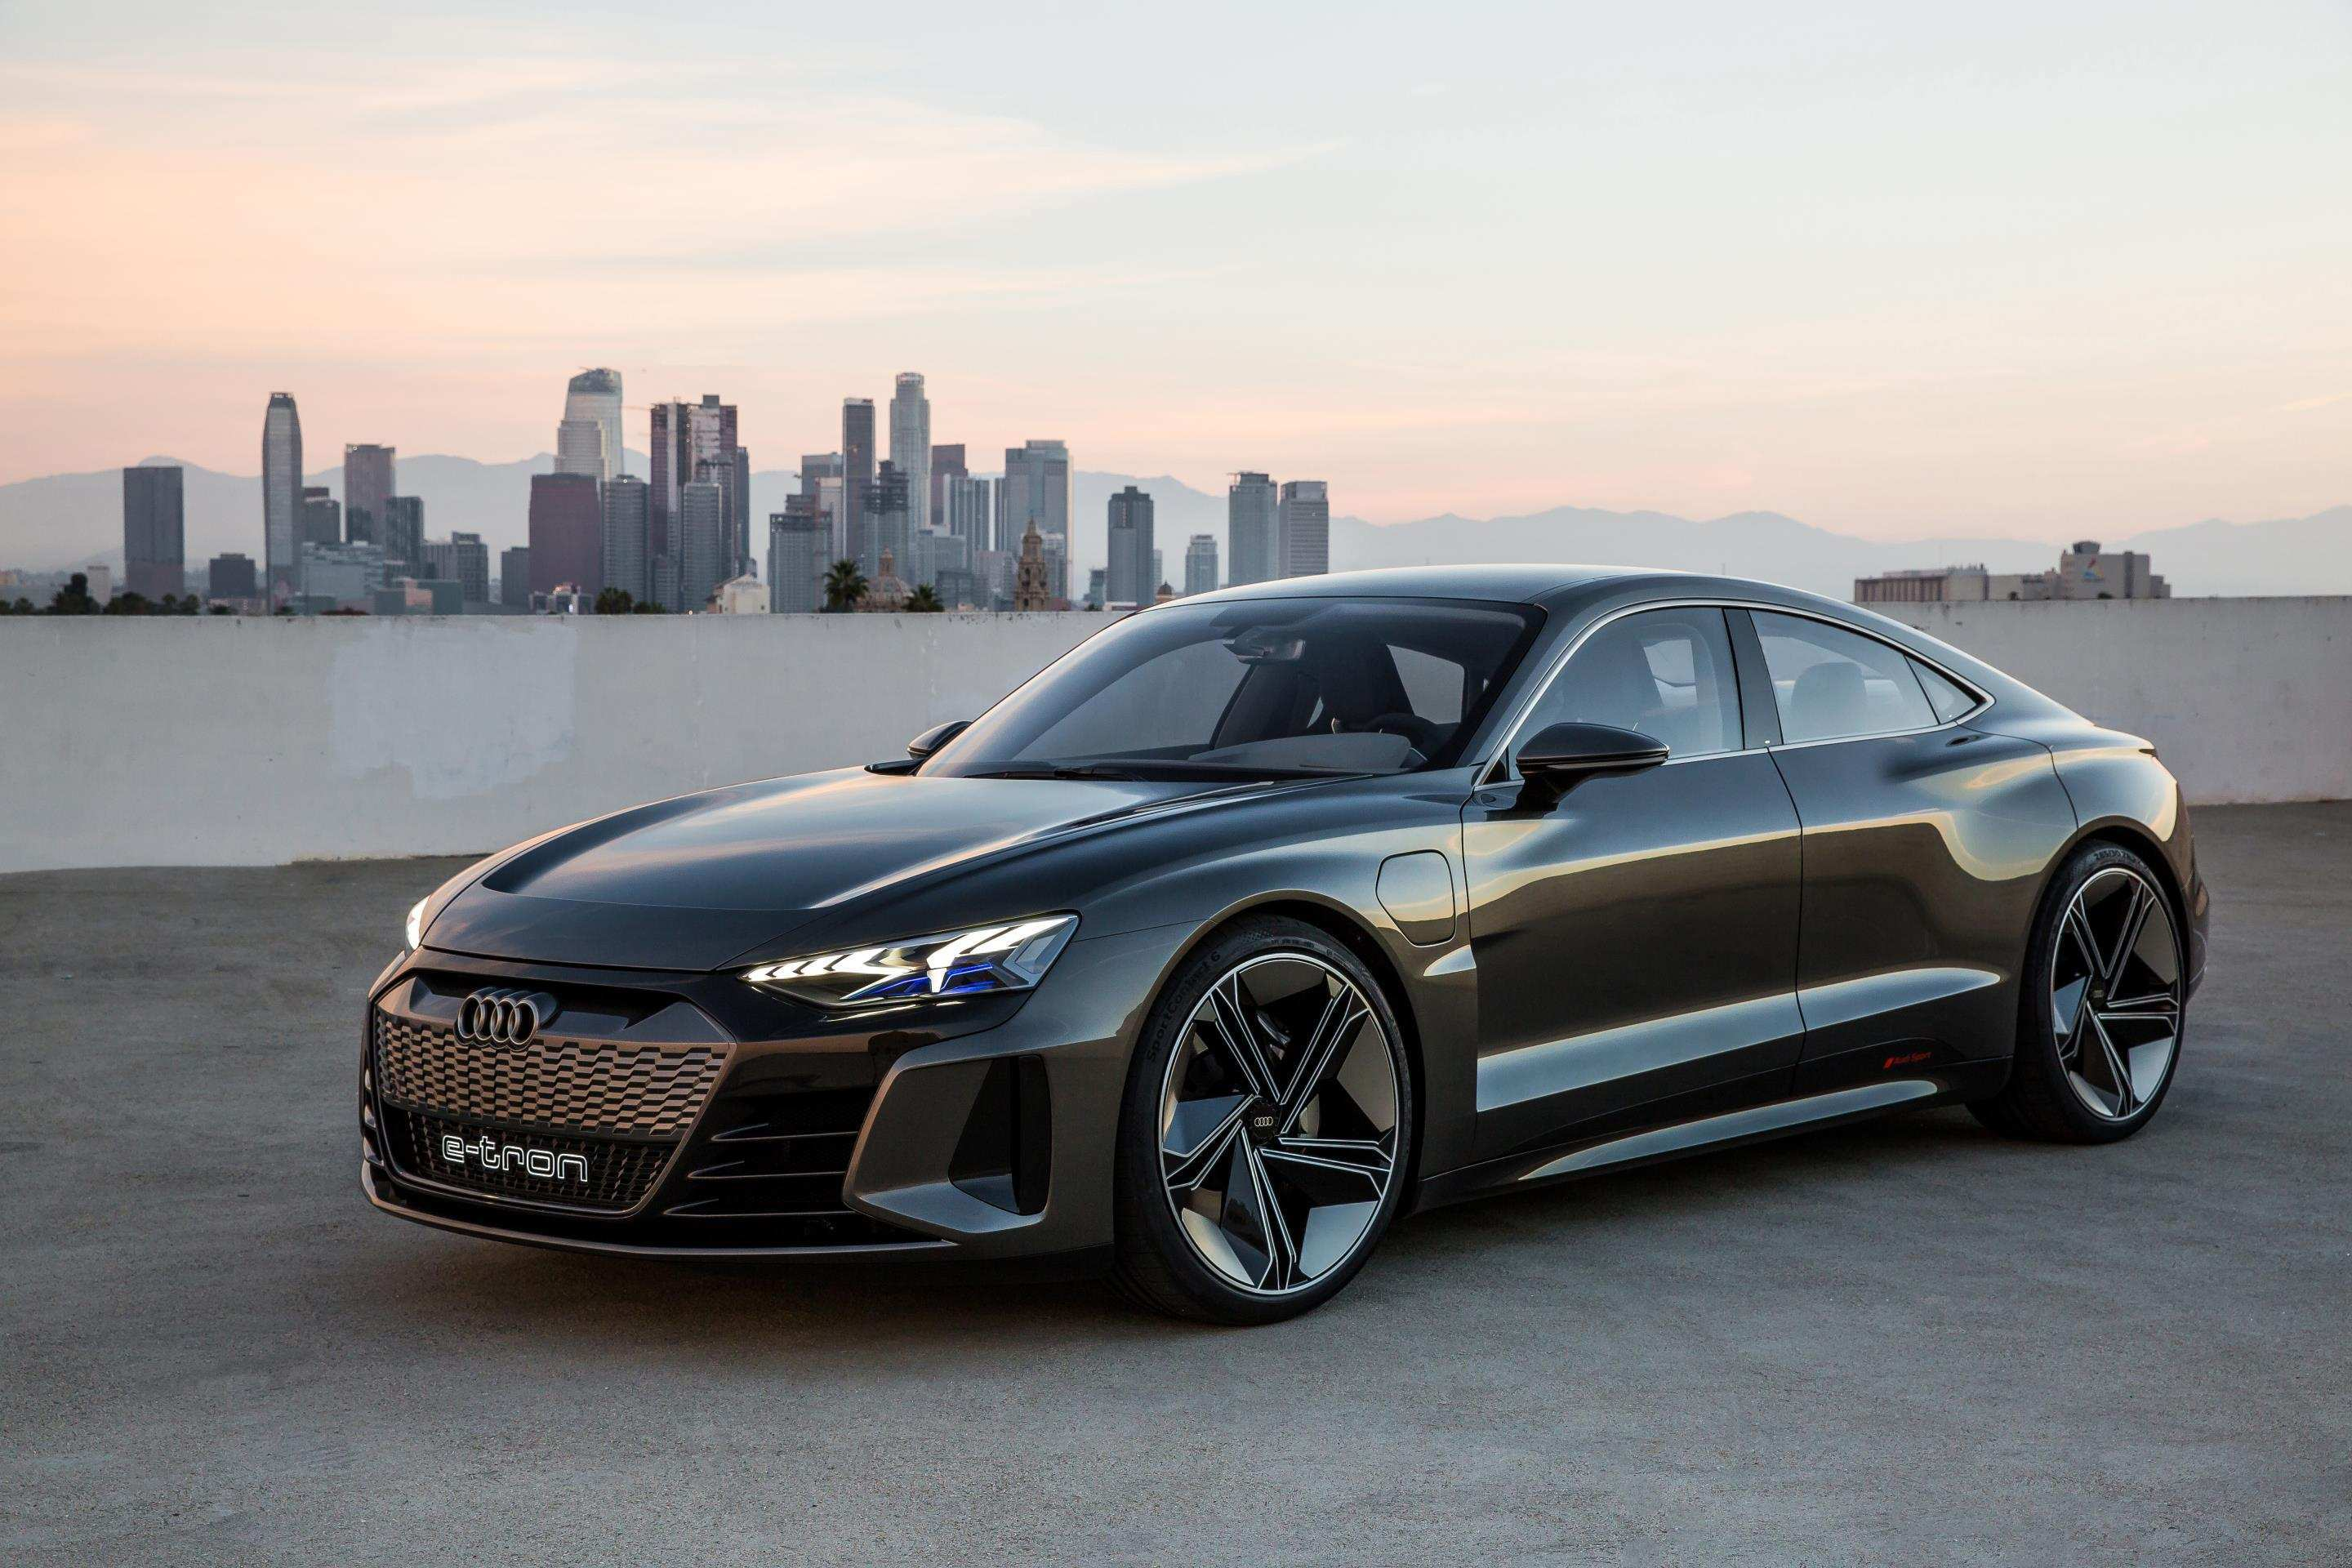 96 The Best Audi E Tron 2020 Exterior And Interior